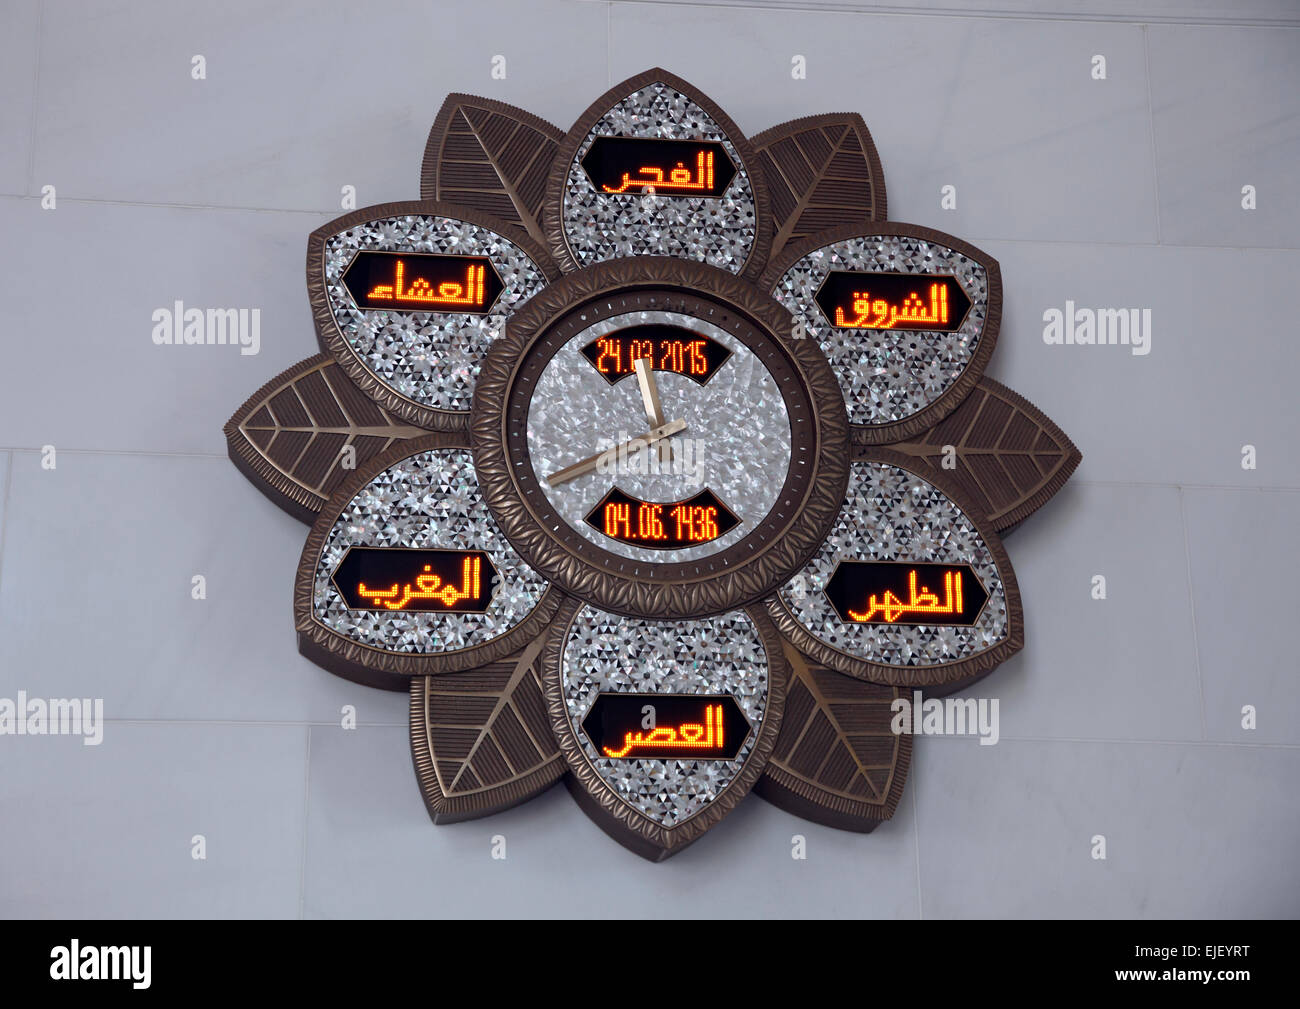 Clock in The Grand Mosque Abu Dhabi - Stock Image